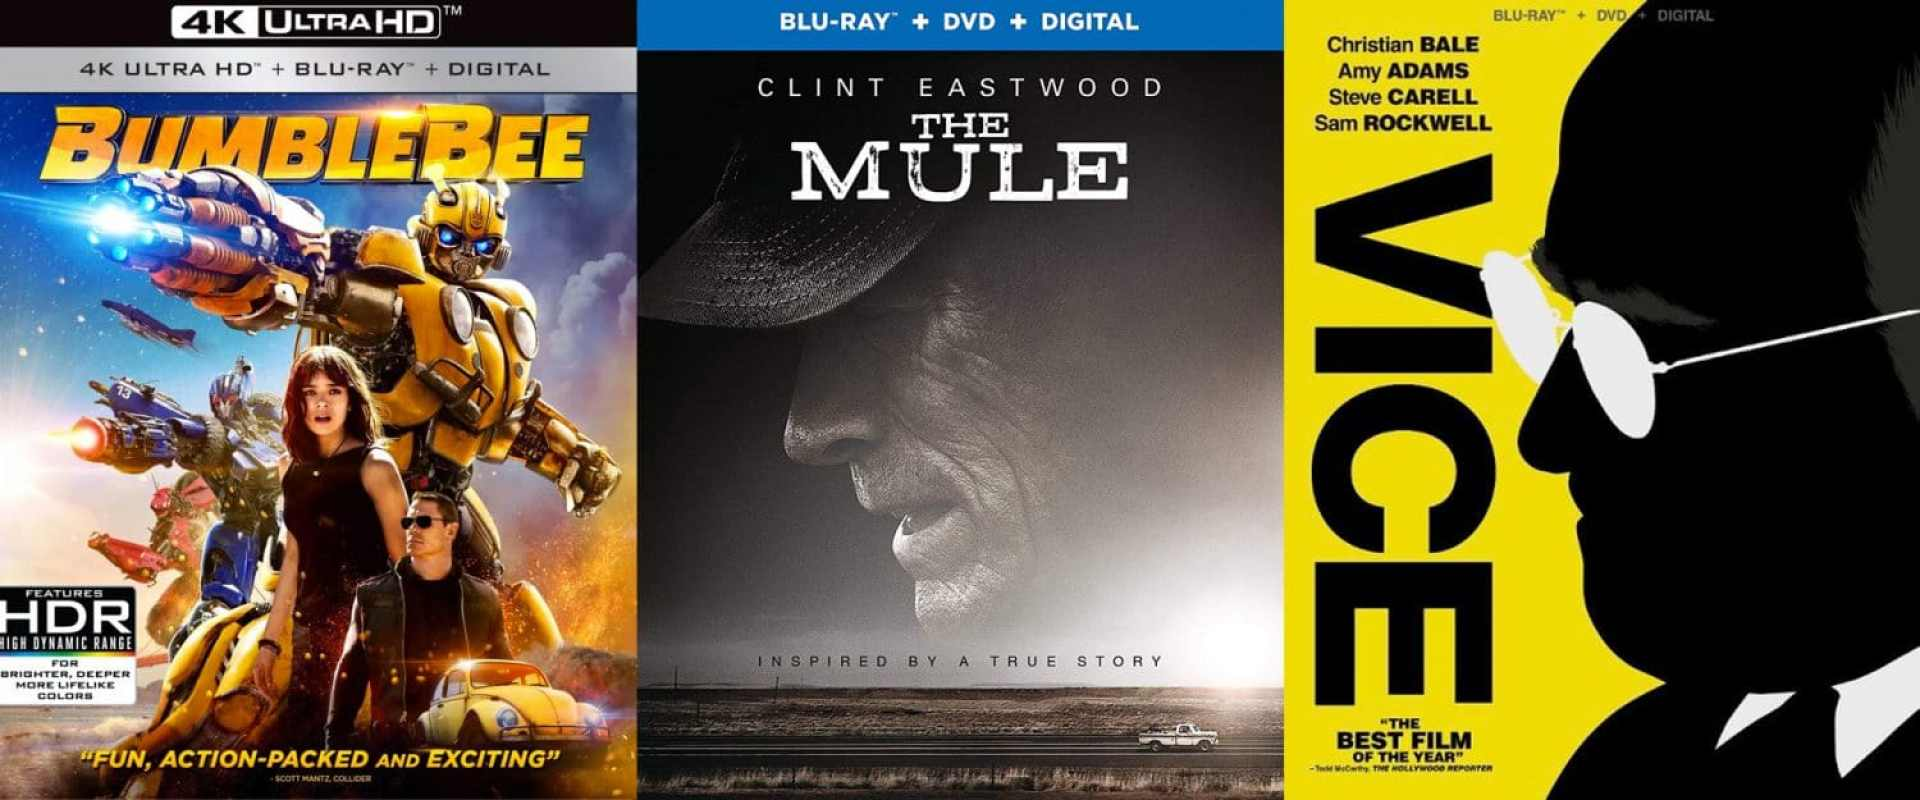 Bumblebee, The Mule and Vice are coming home this week on DVD and Blu-ray.